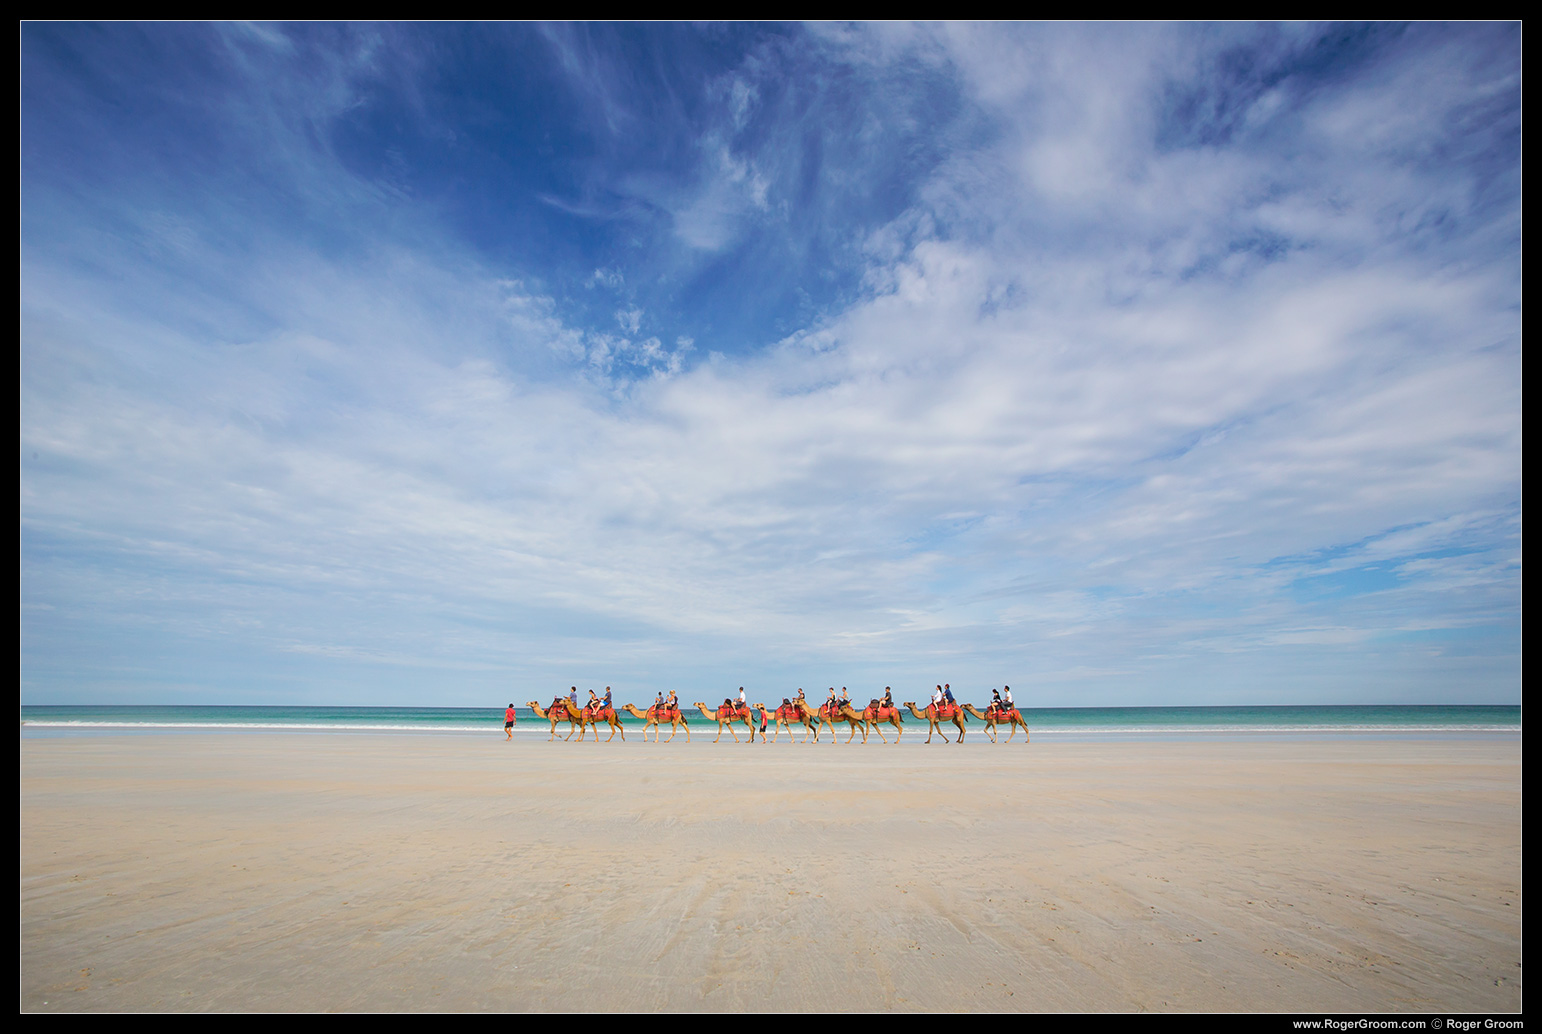 Camels on Cable Beach with the spectacular sky and sand.